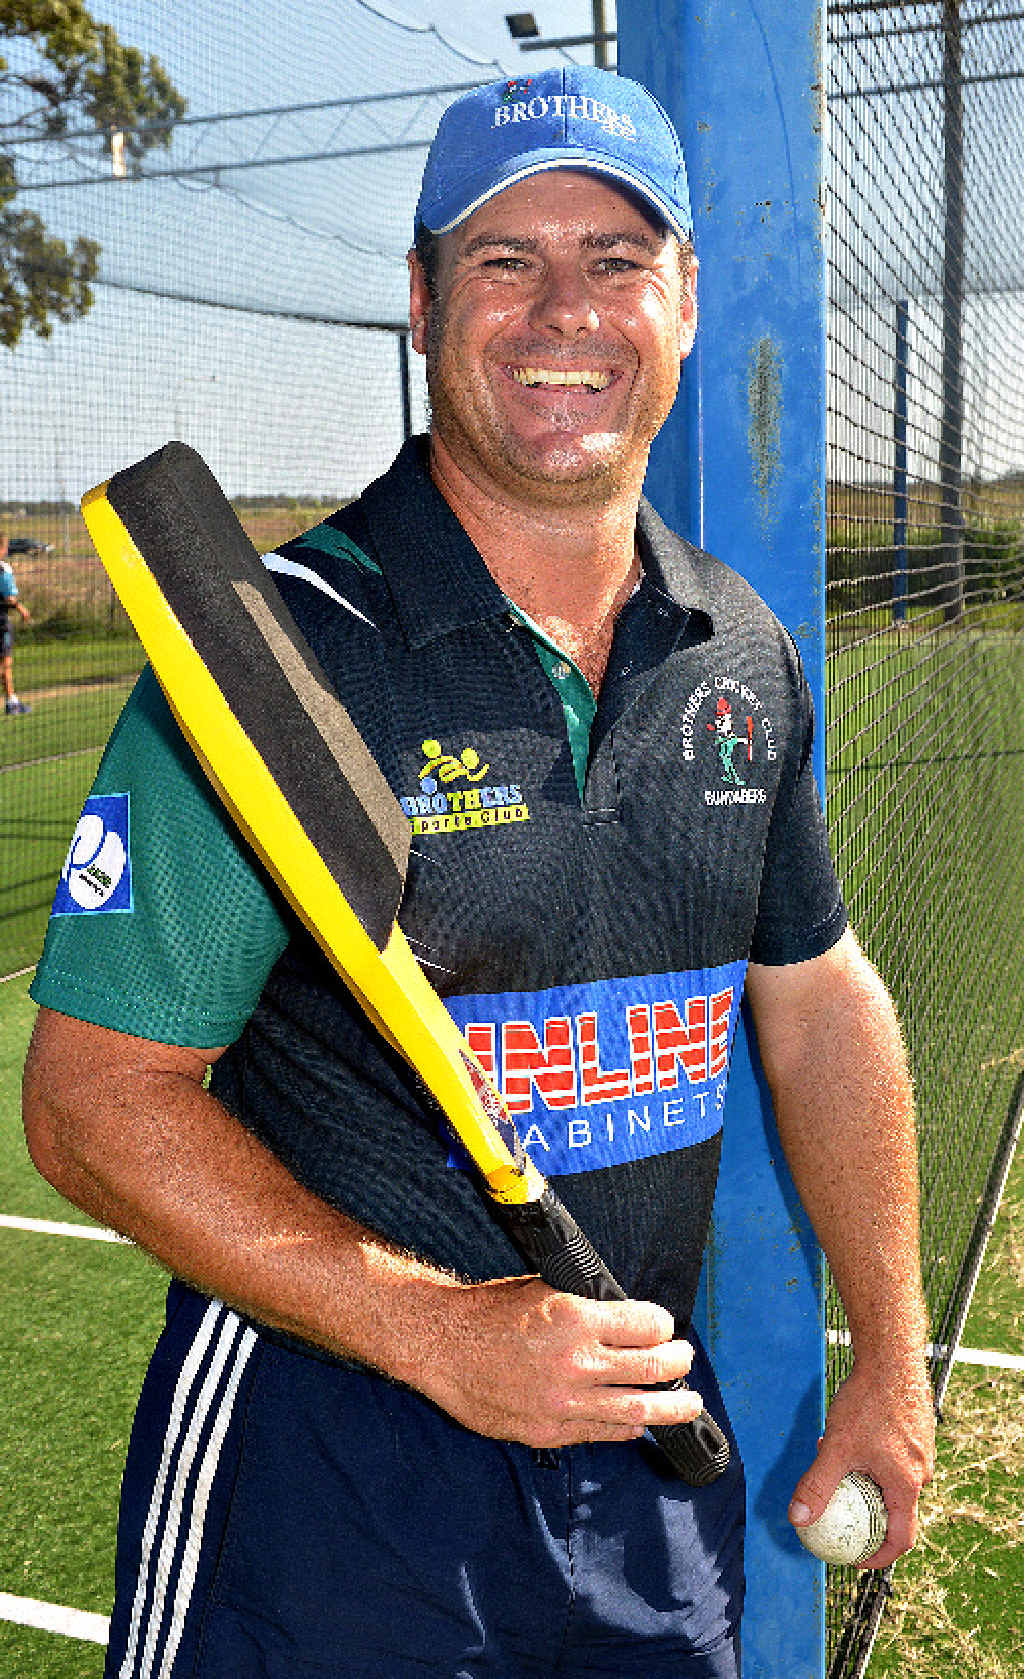 New Brothers coach Len Kirchner is keen to impart his skills.